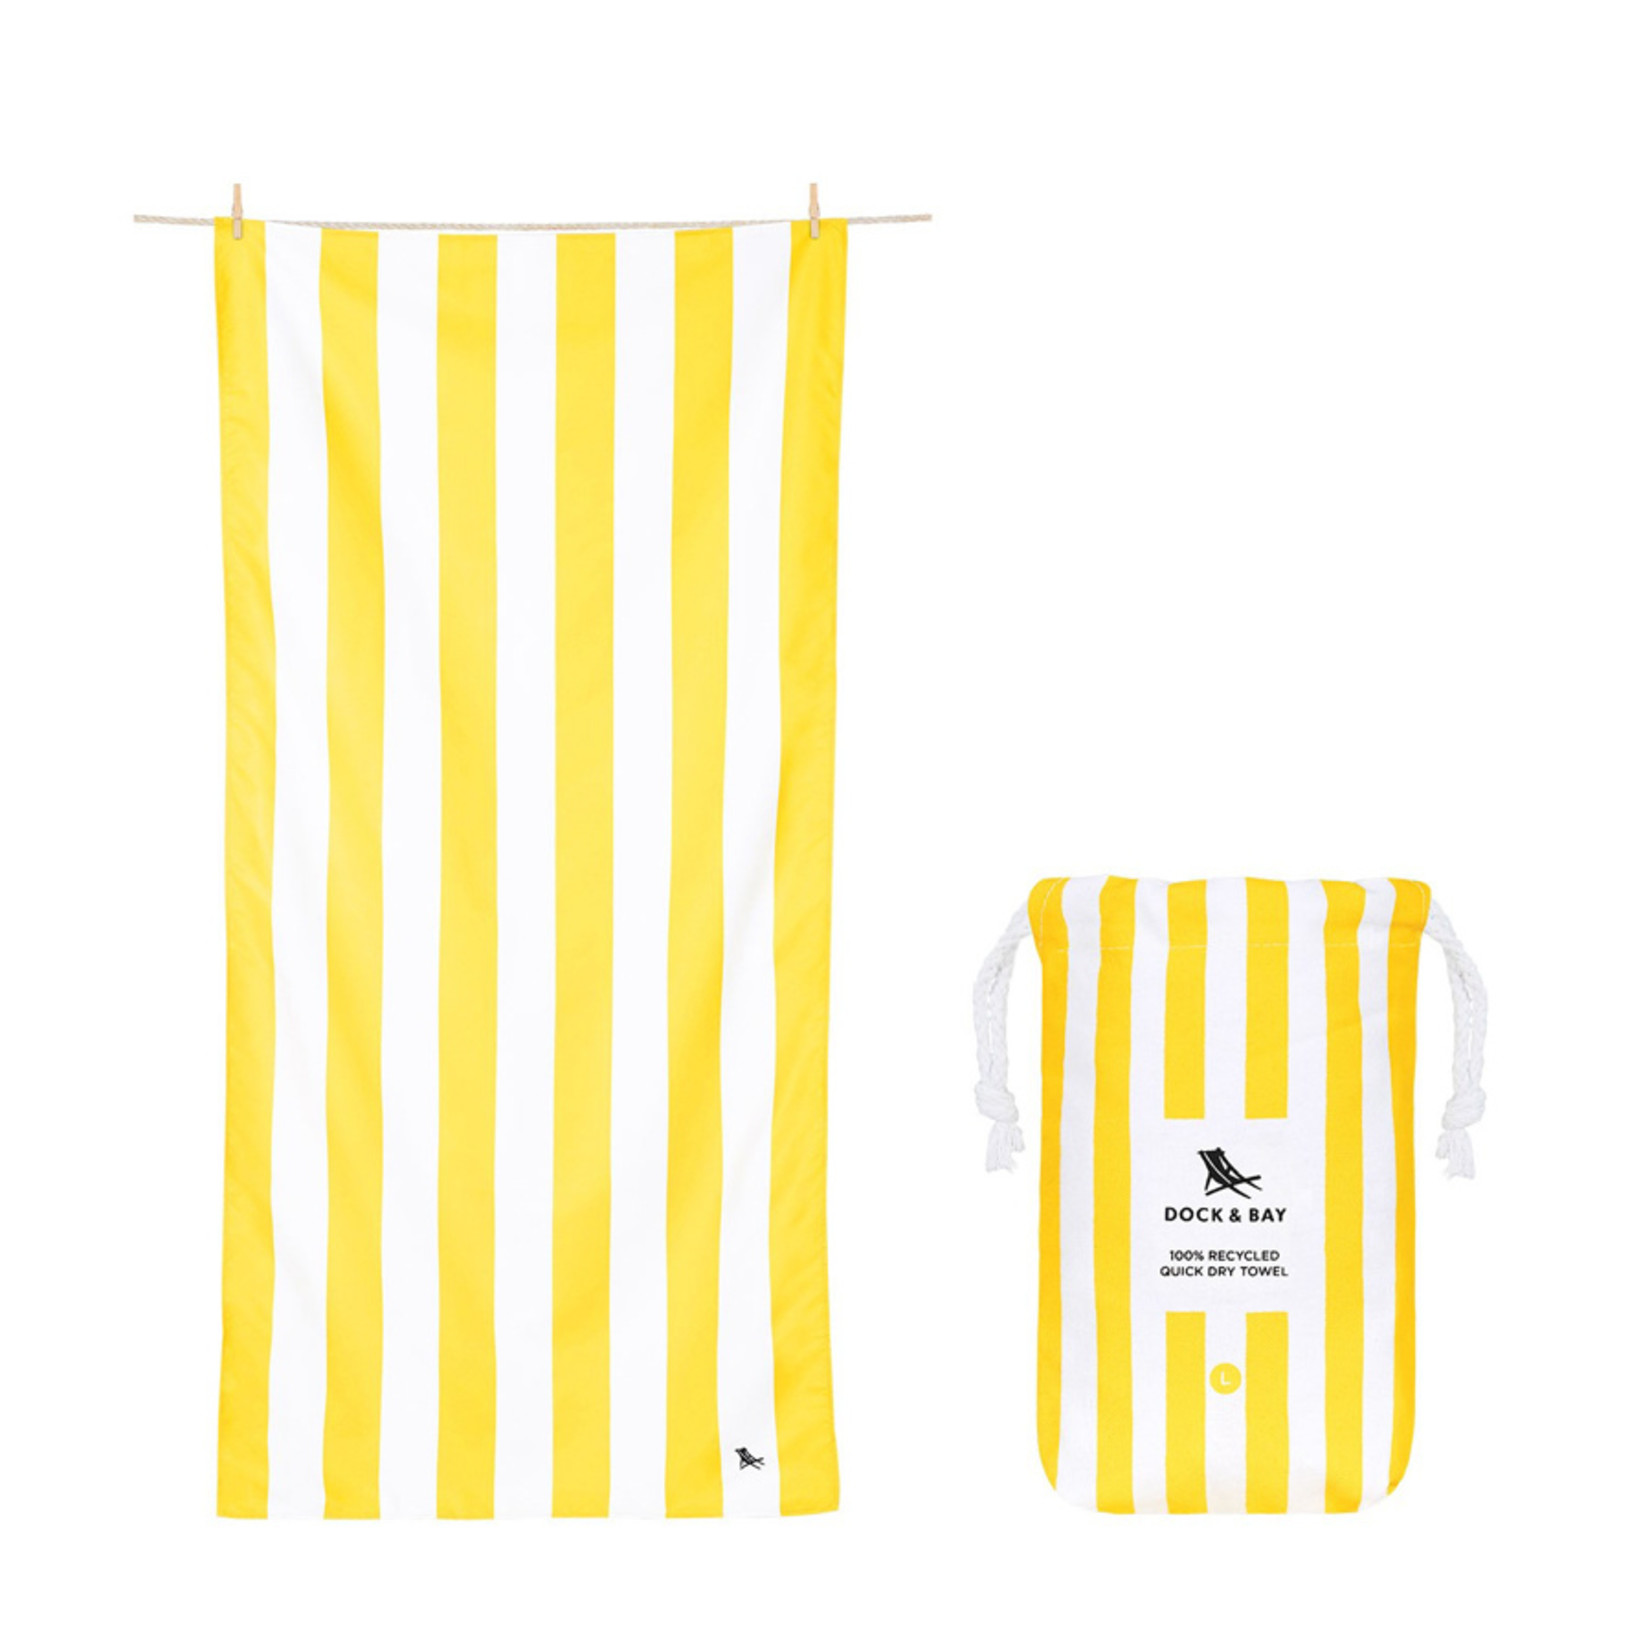 Dock & Bay Quick Dry Towel Cabana Collection